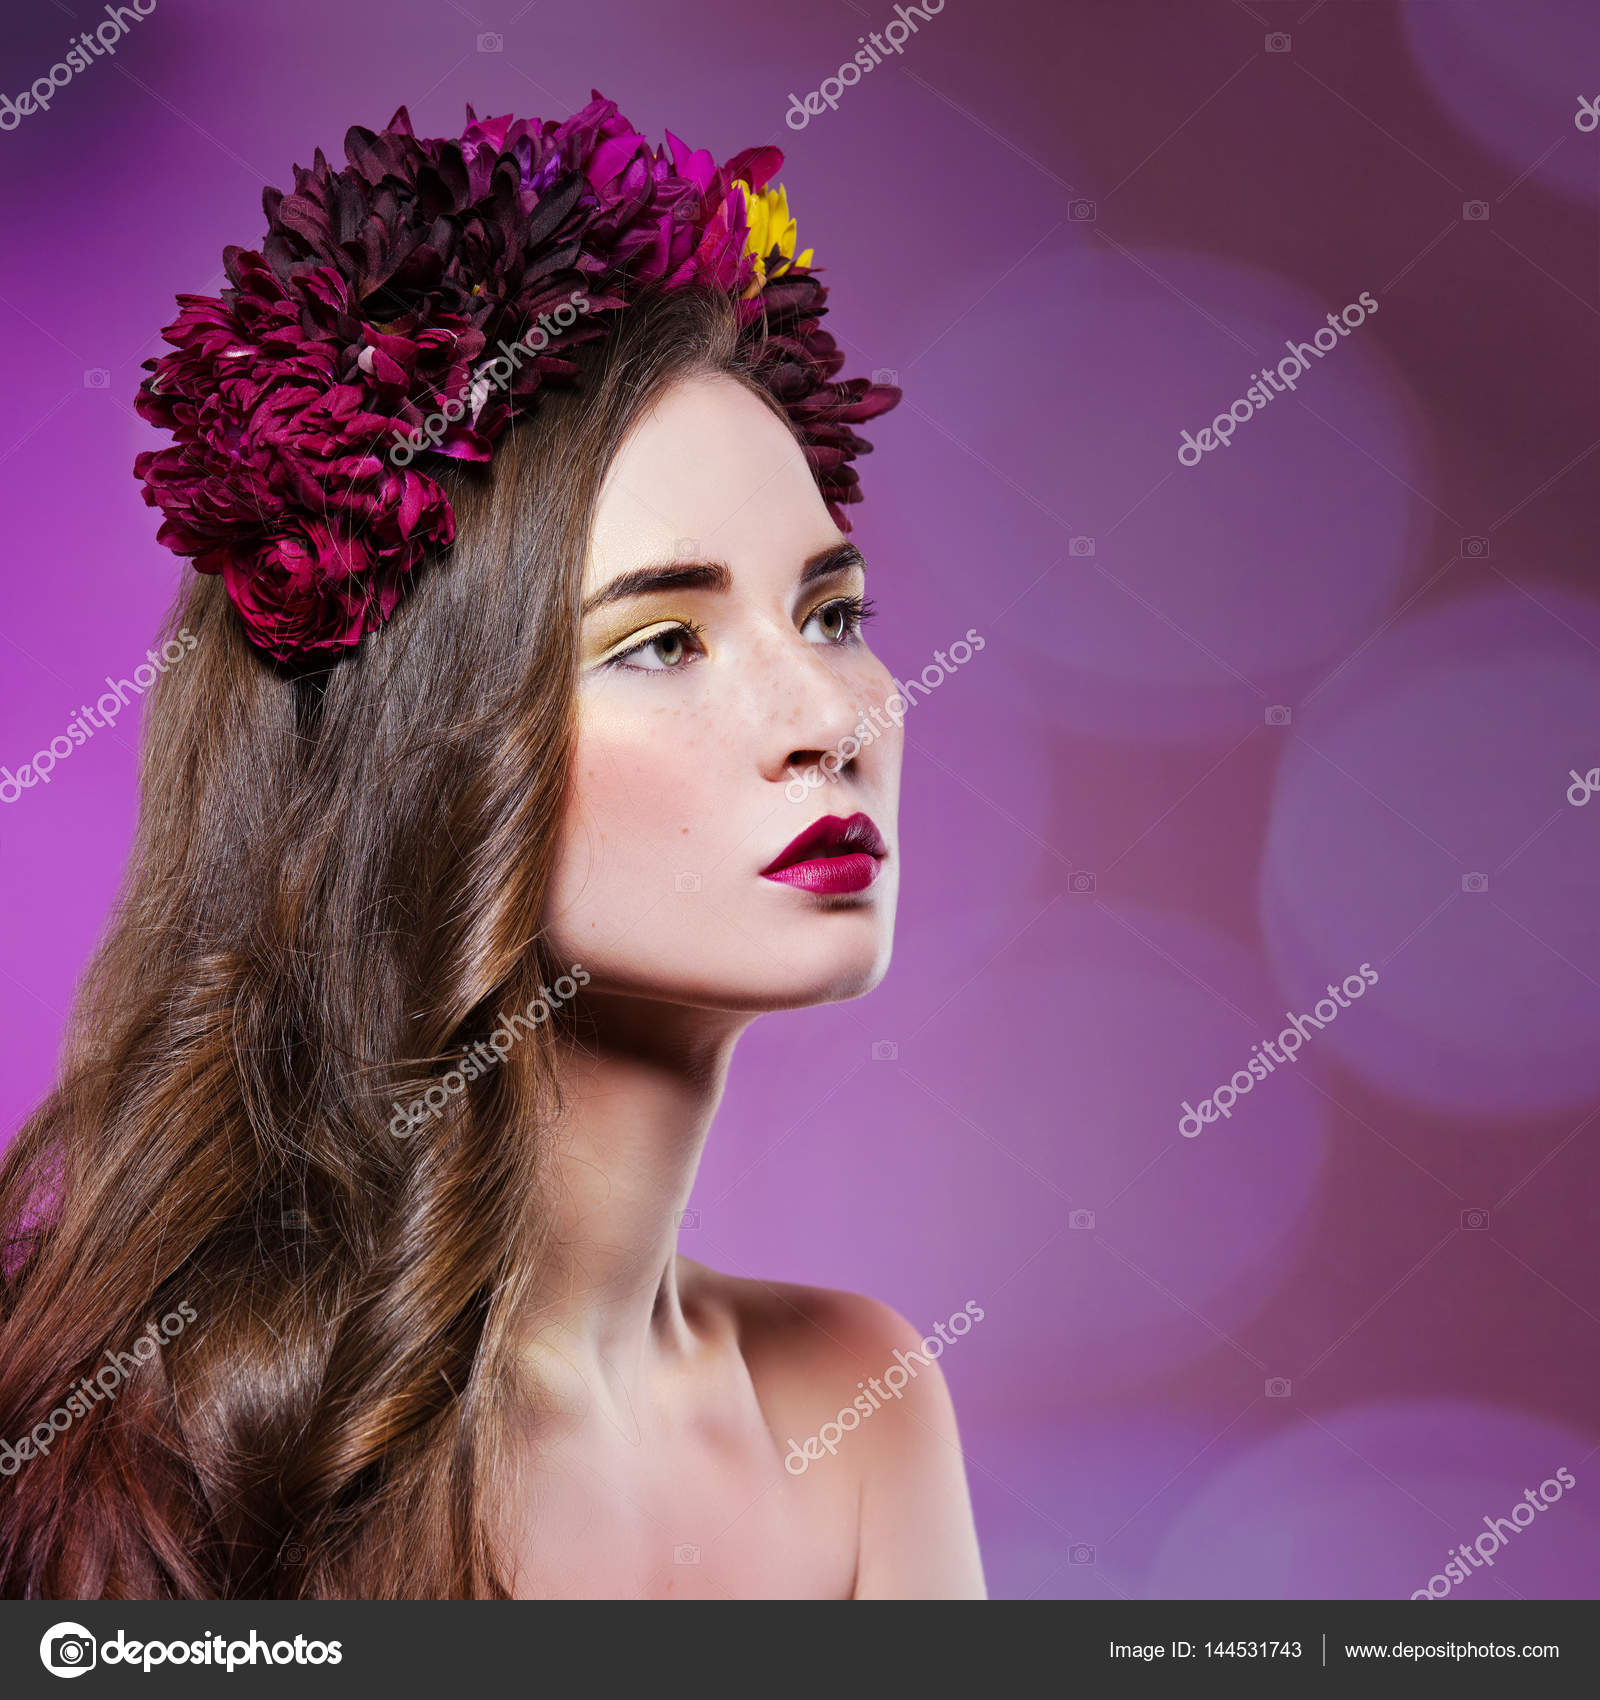 Beautiful Girl With Flowers On Head Stock Photo Svetography